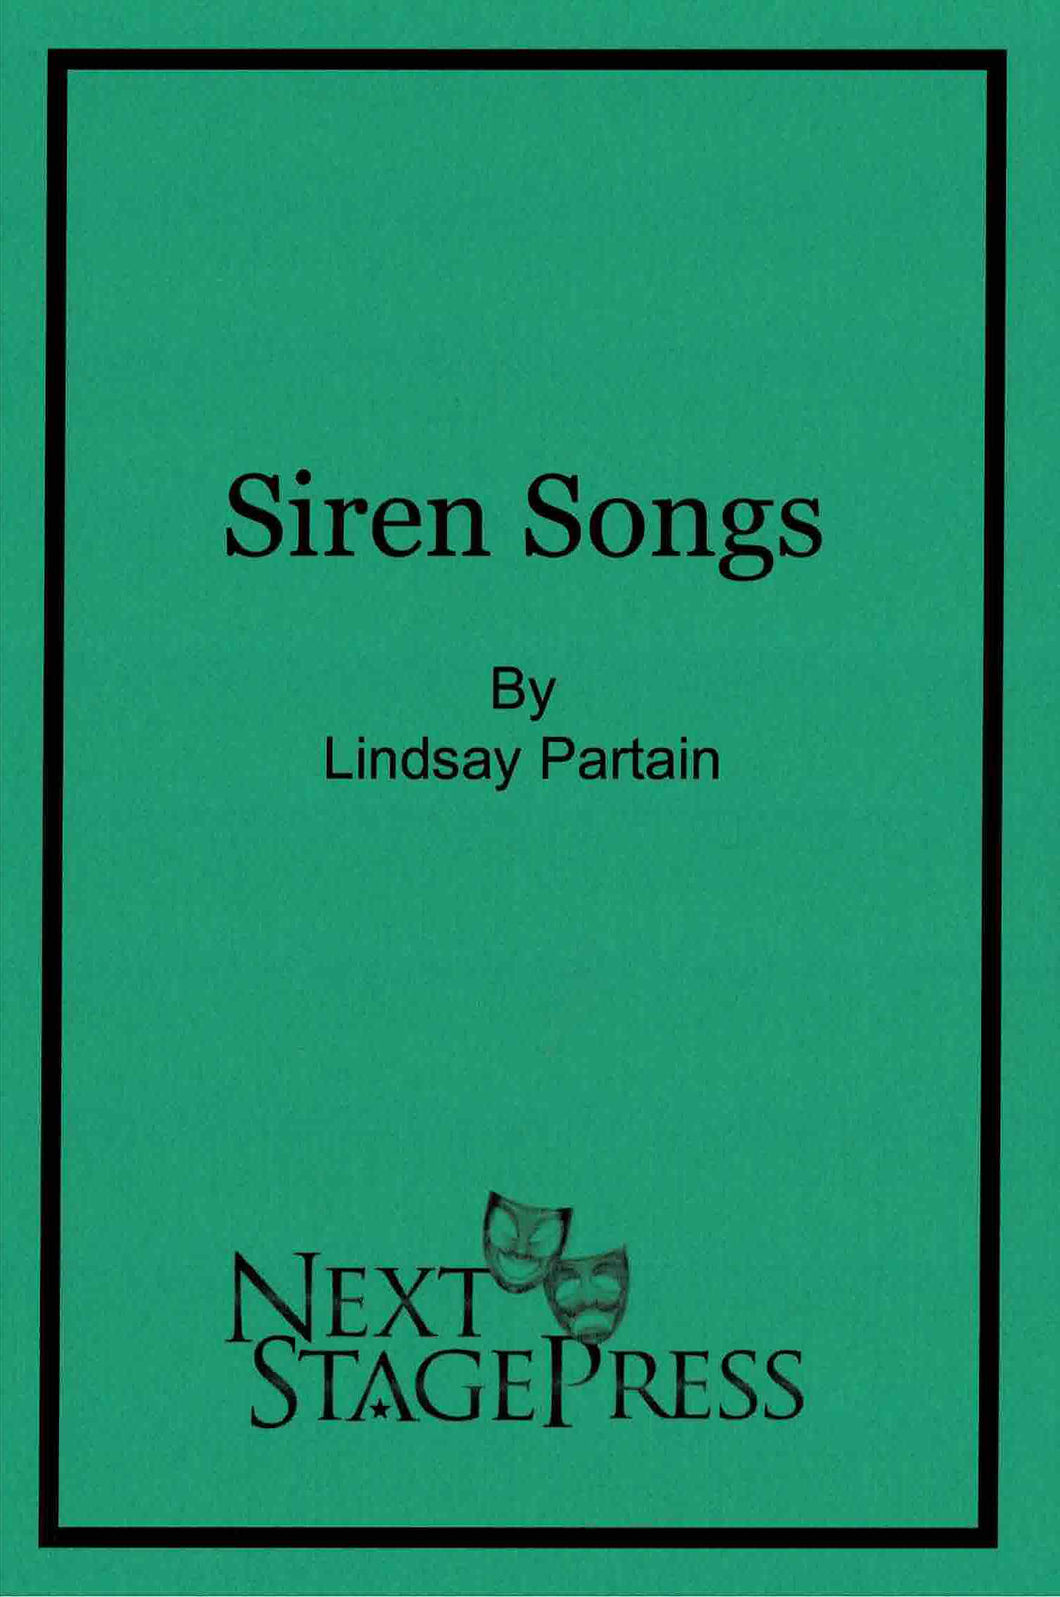 Siren Songs - Digital Version